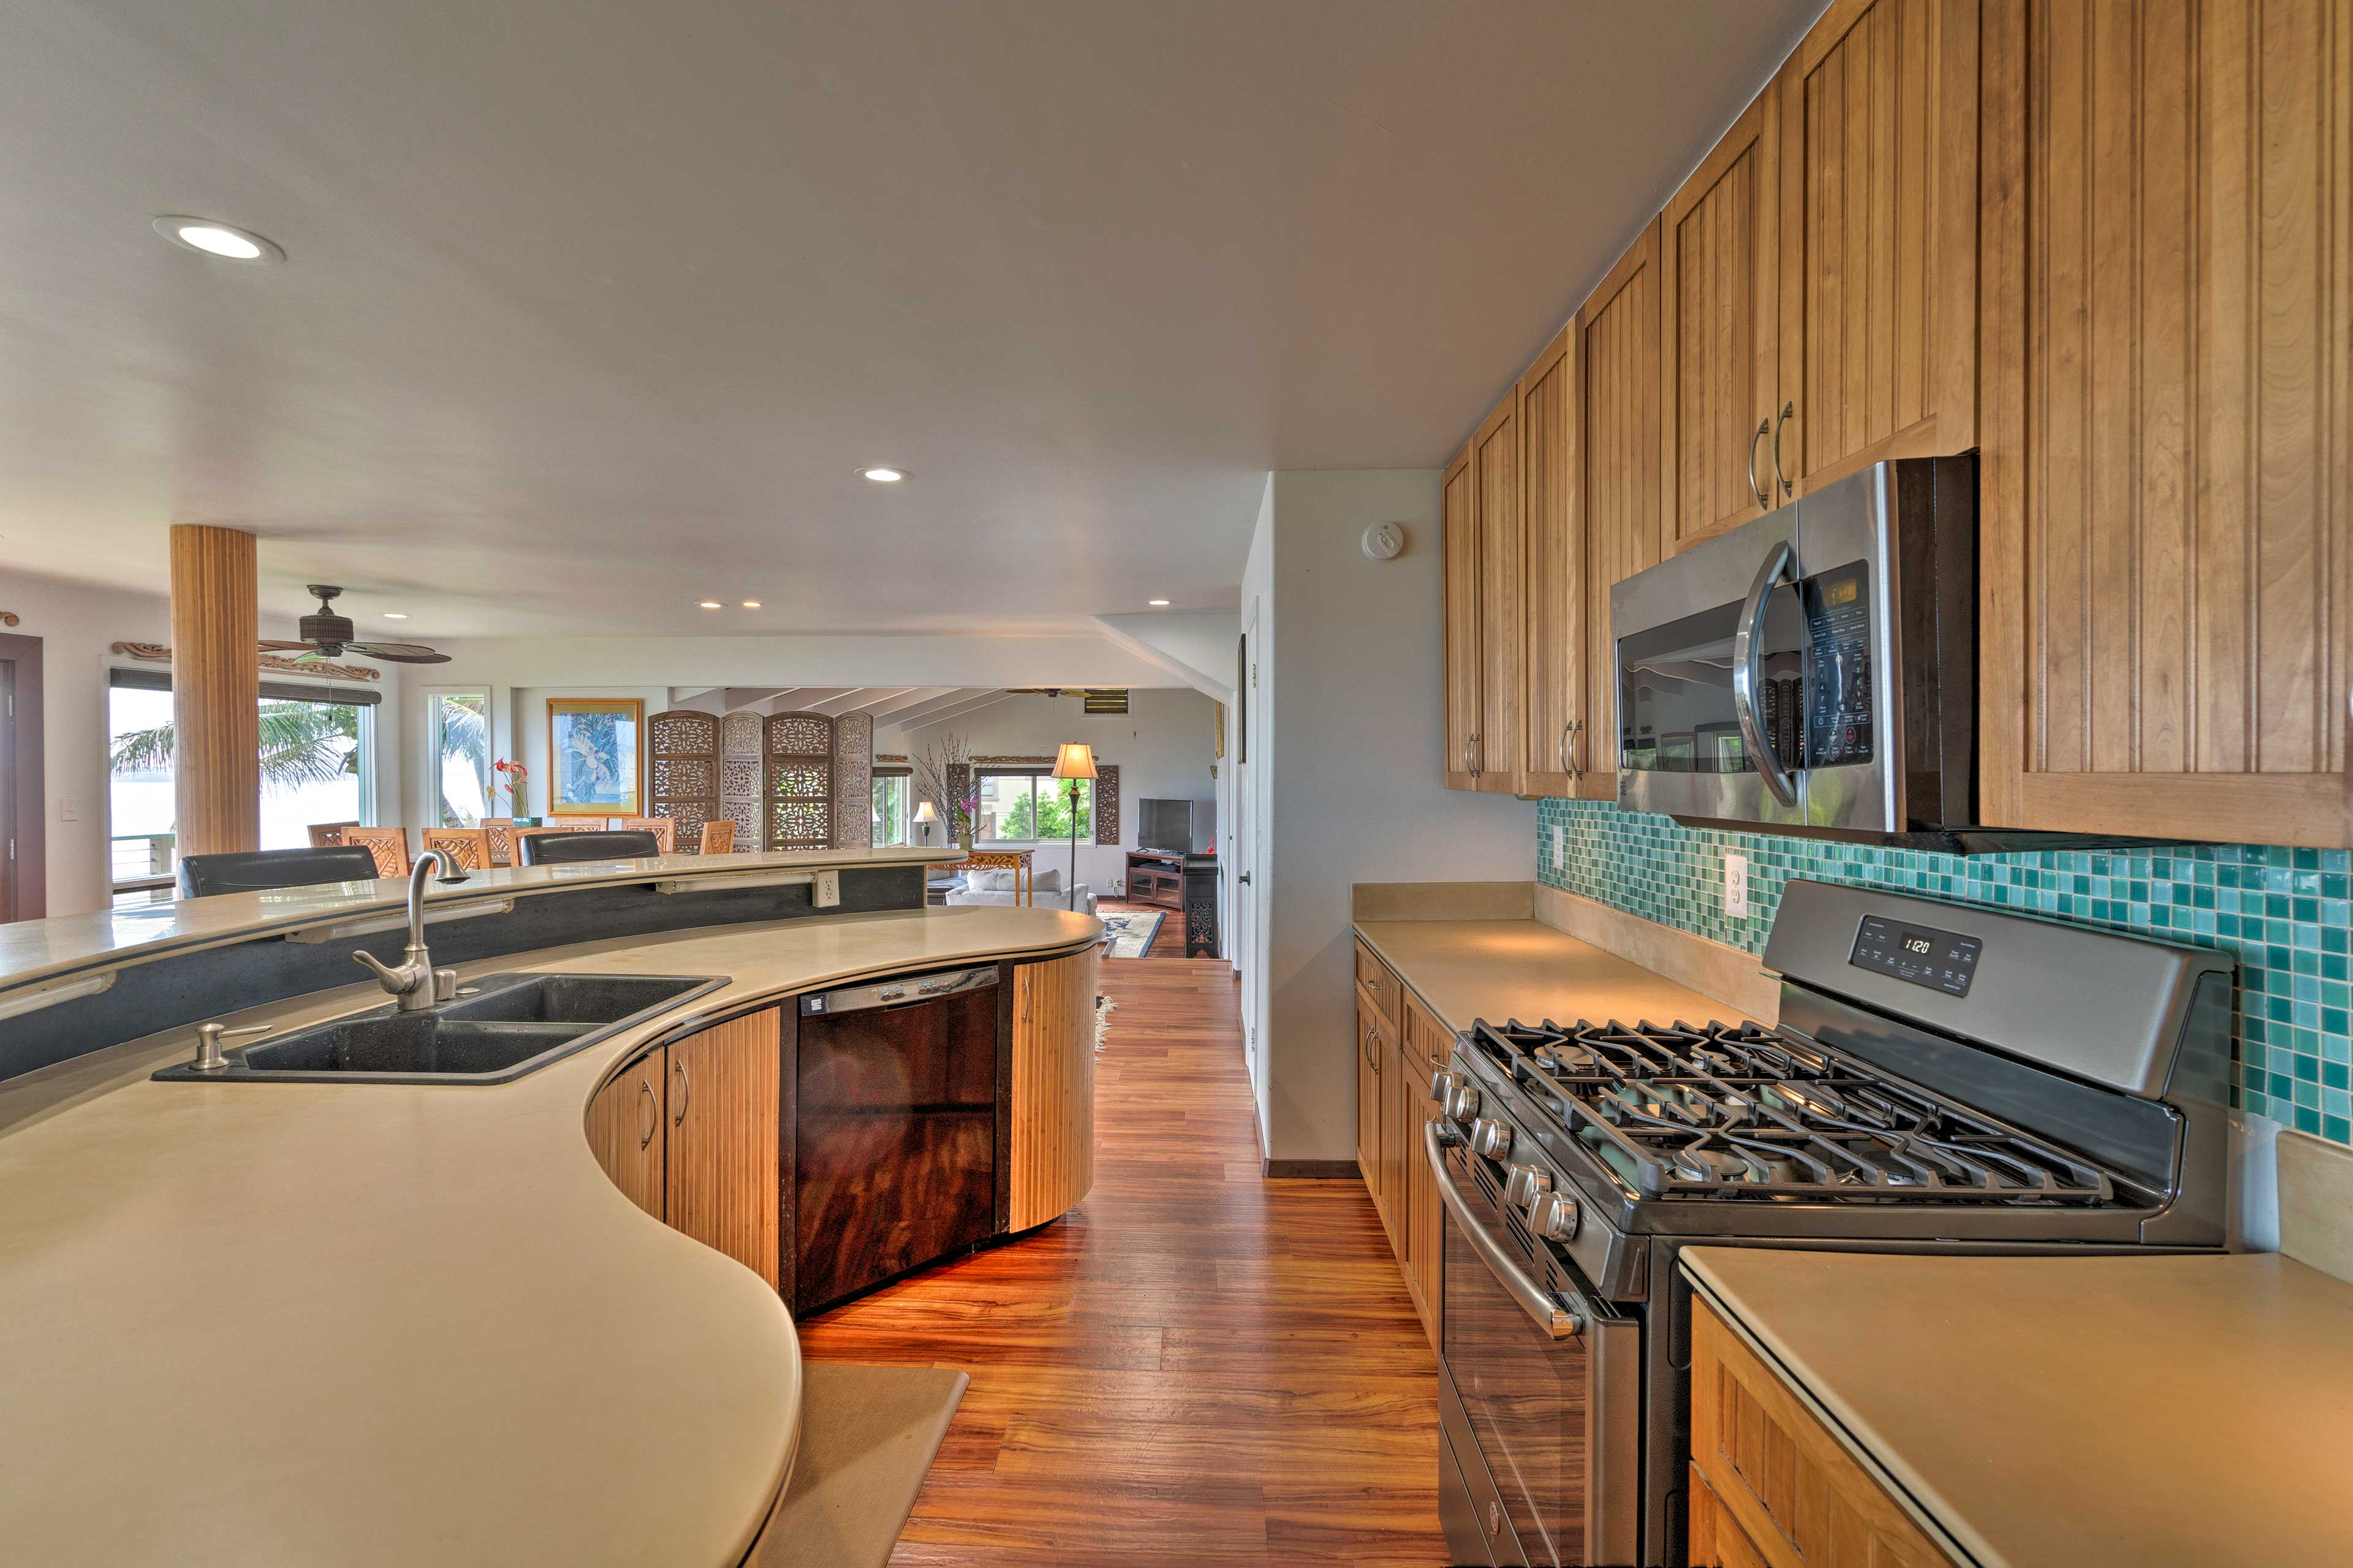 The fully equipped kitchen has stainless steel appliances and Corian counters.